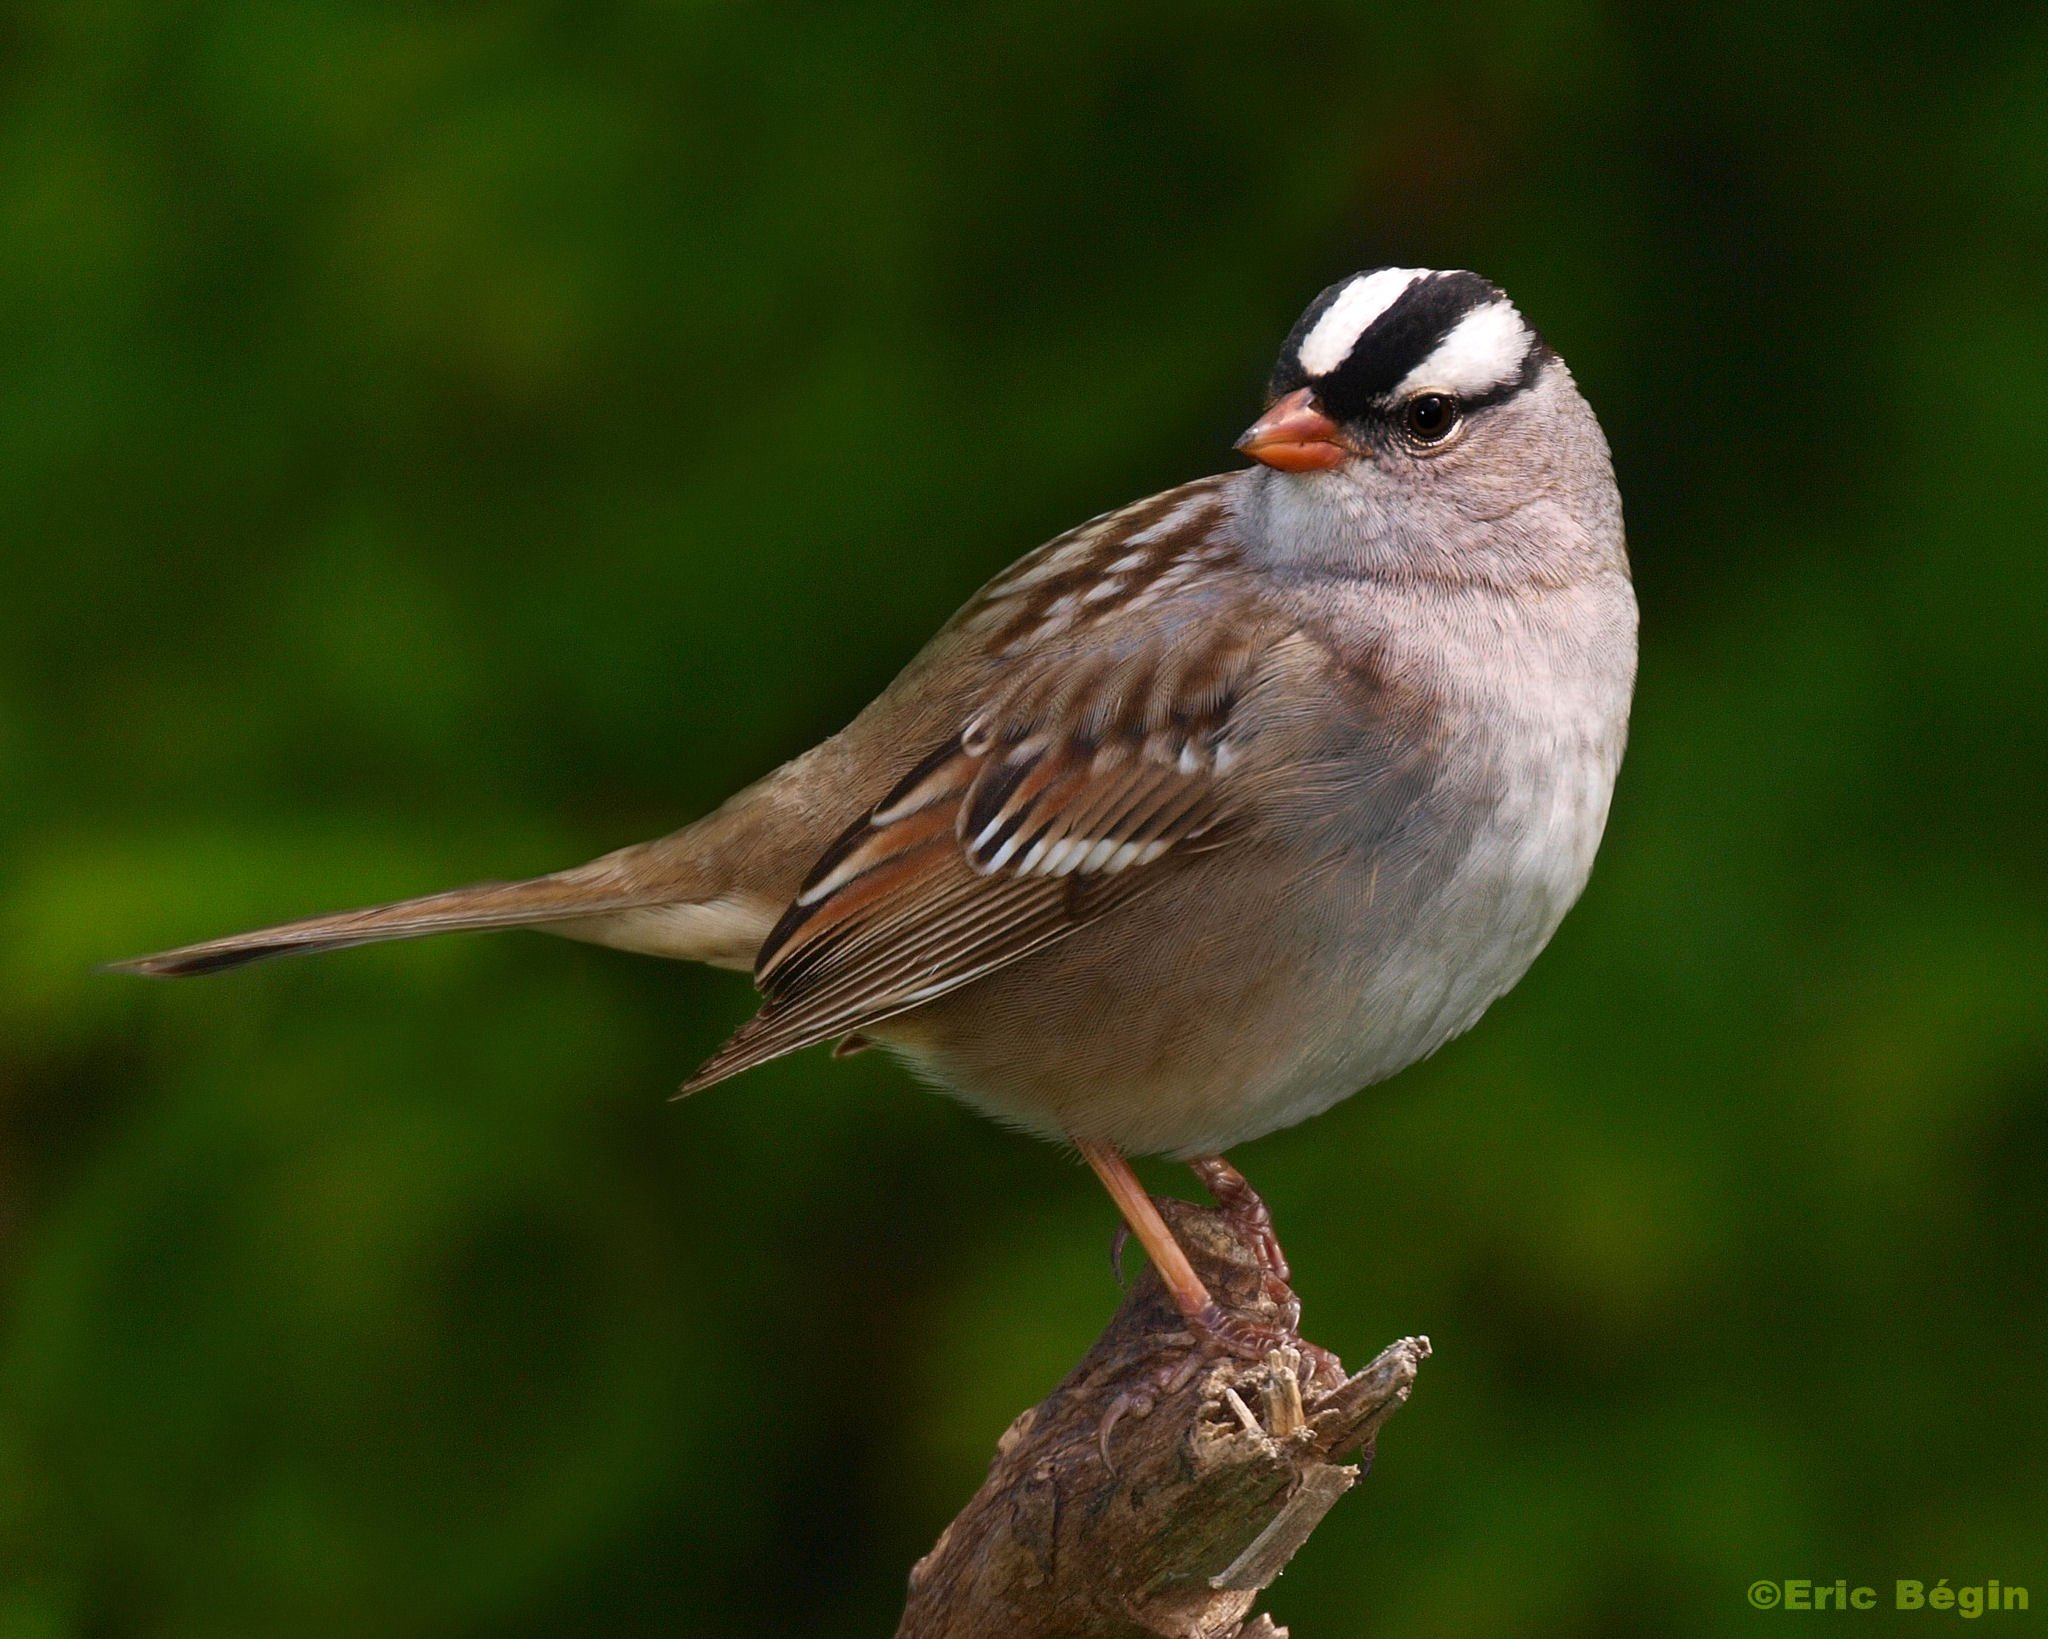 White-crowned sparrow, photo by Eric Bégin